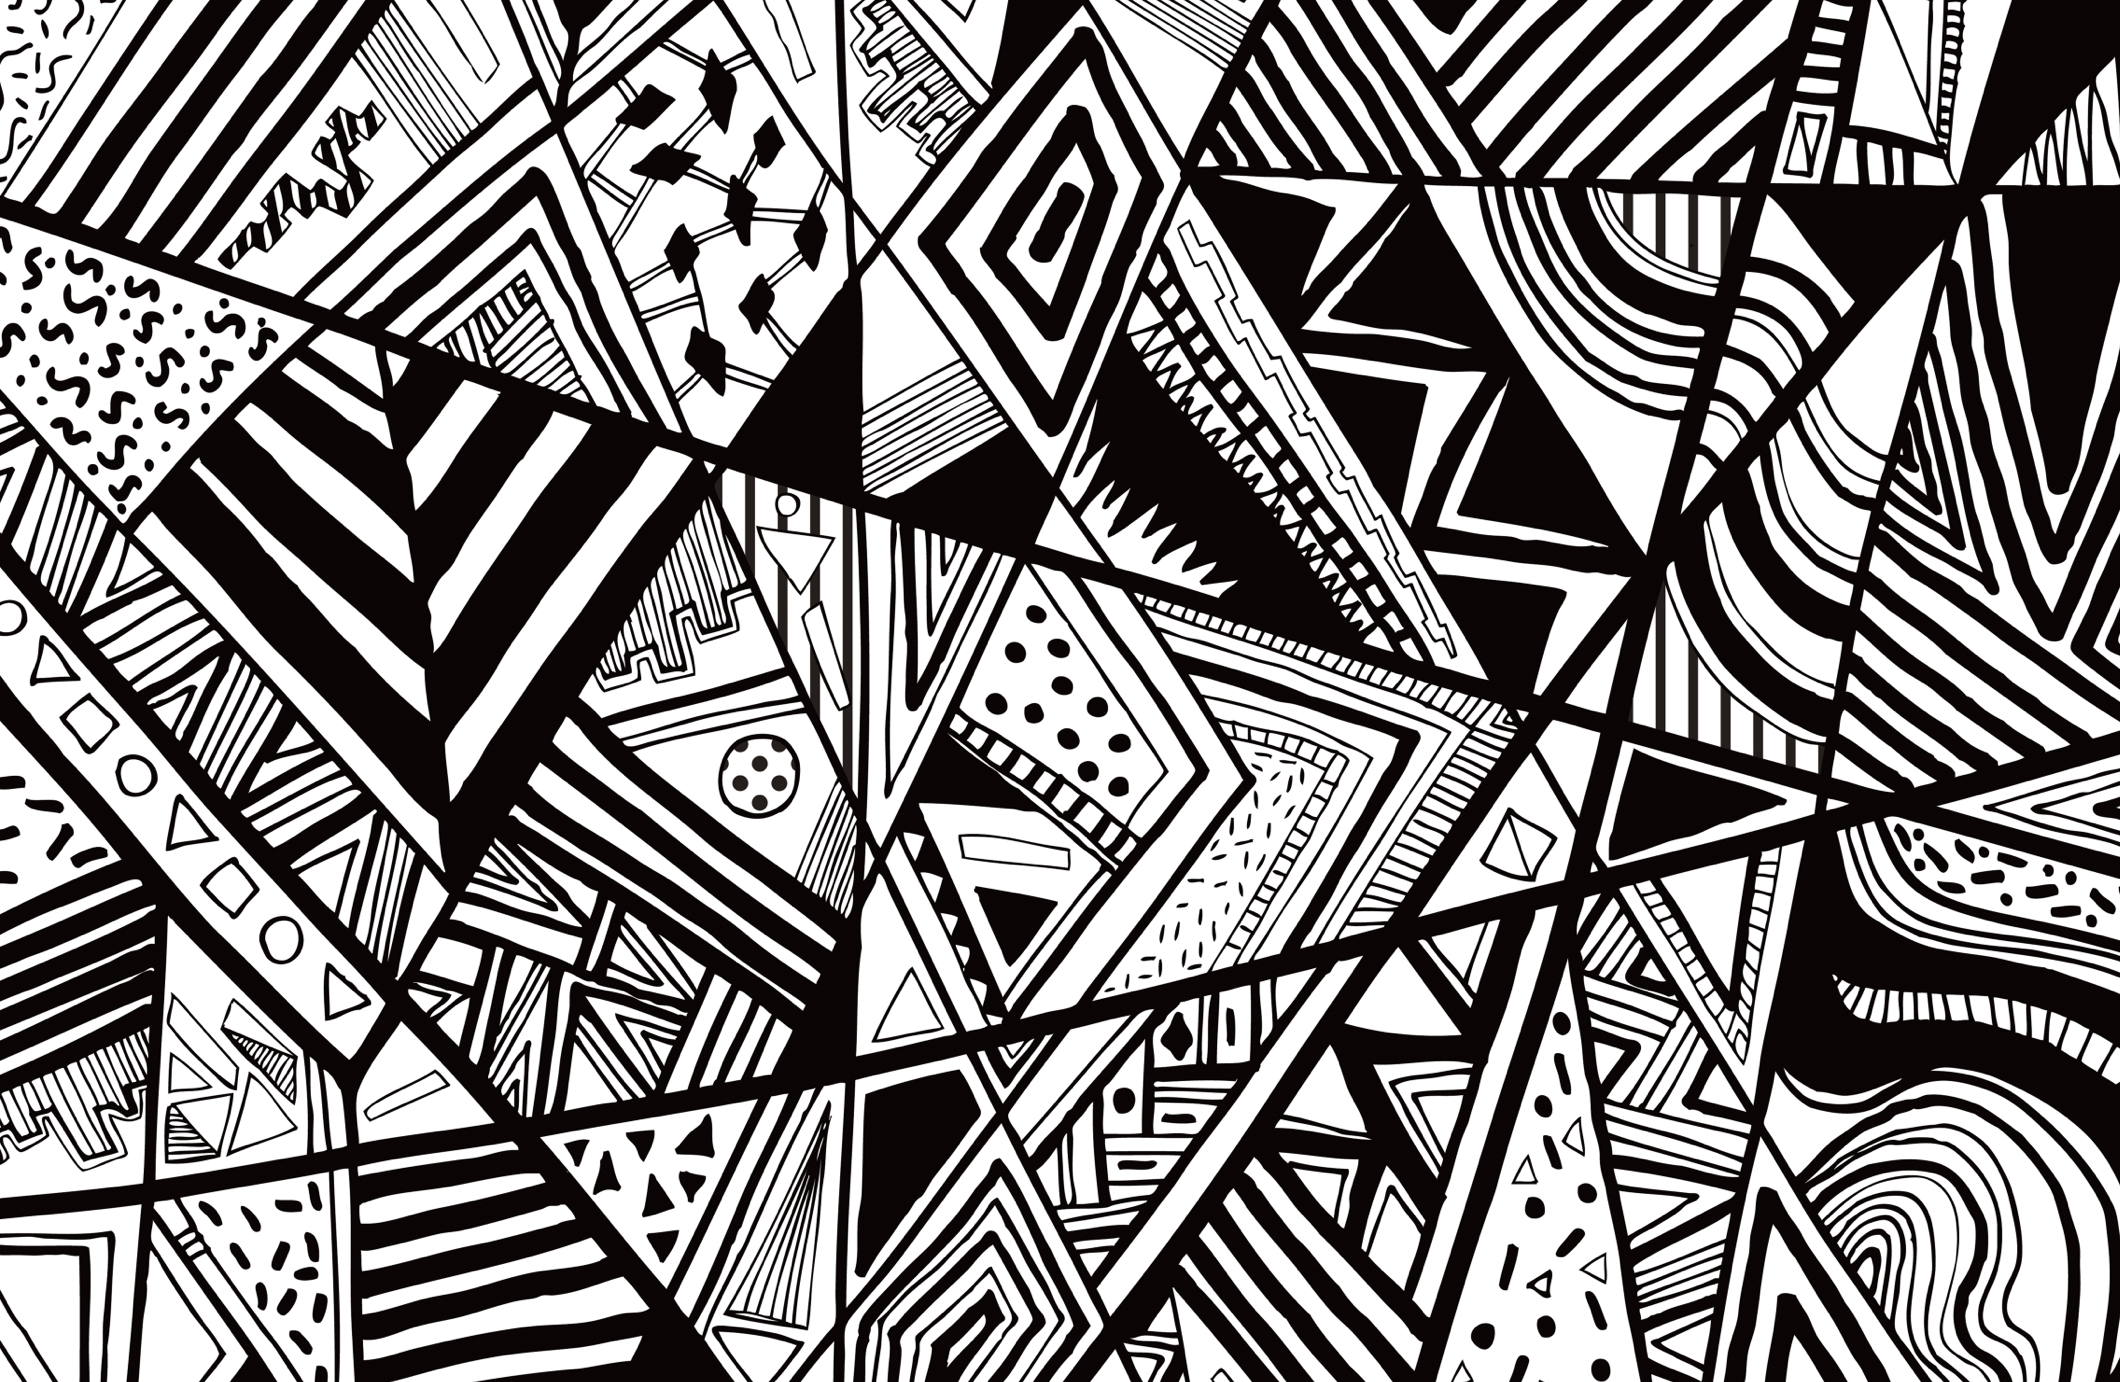 Amazing Black and White Abstract Line Patterns 2120 x 1382 · 2090 kB · png